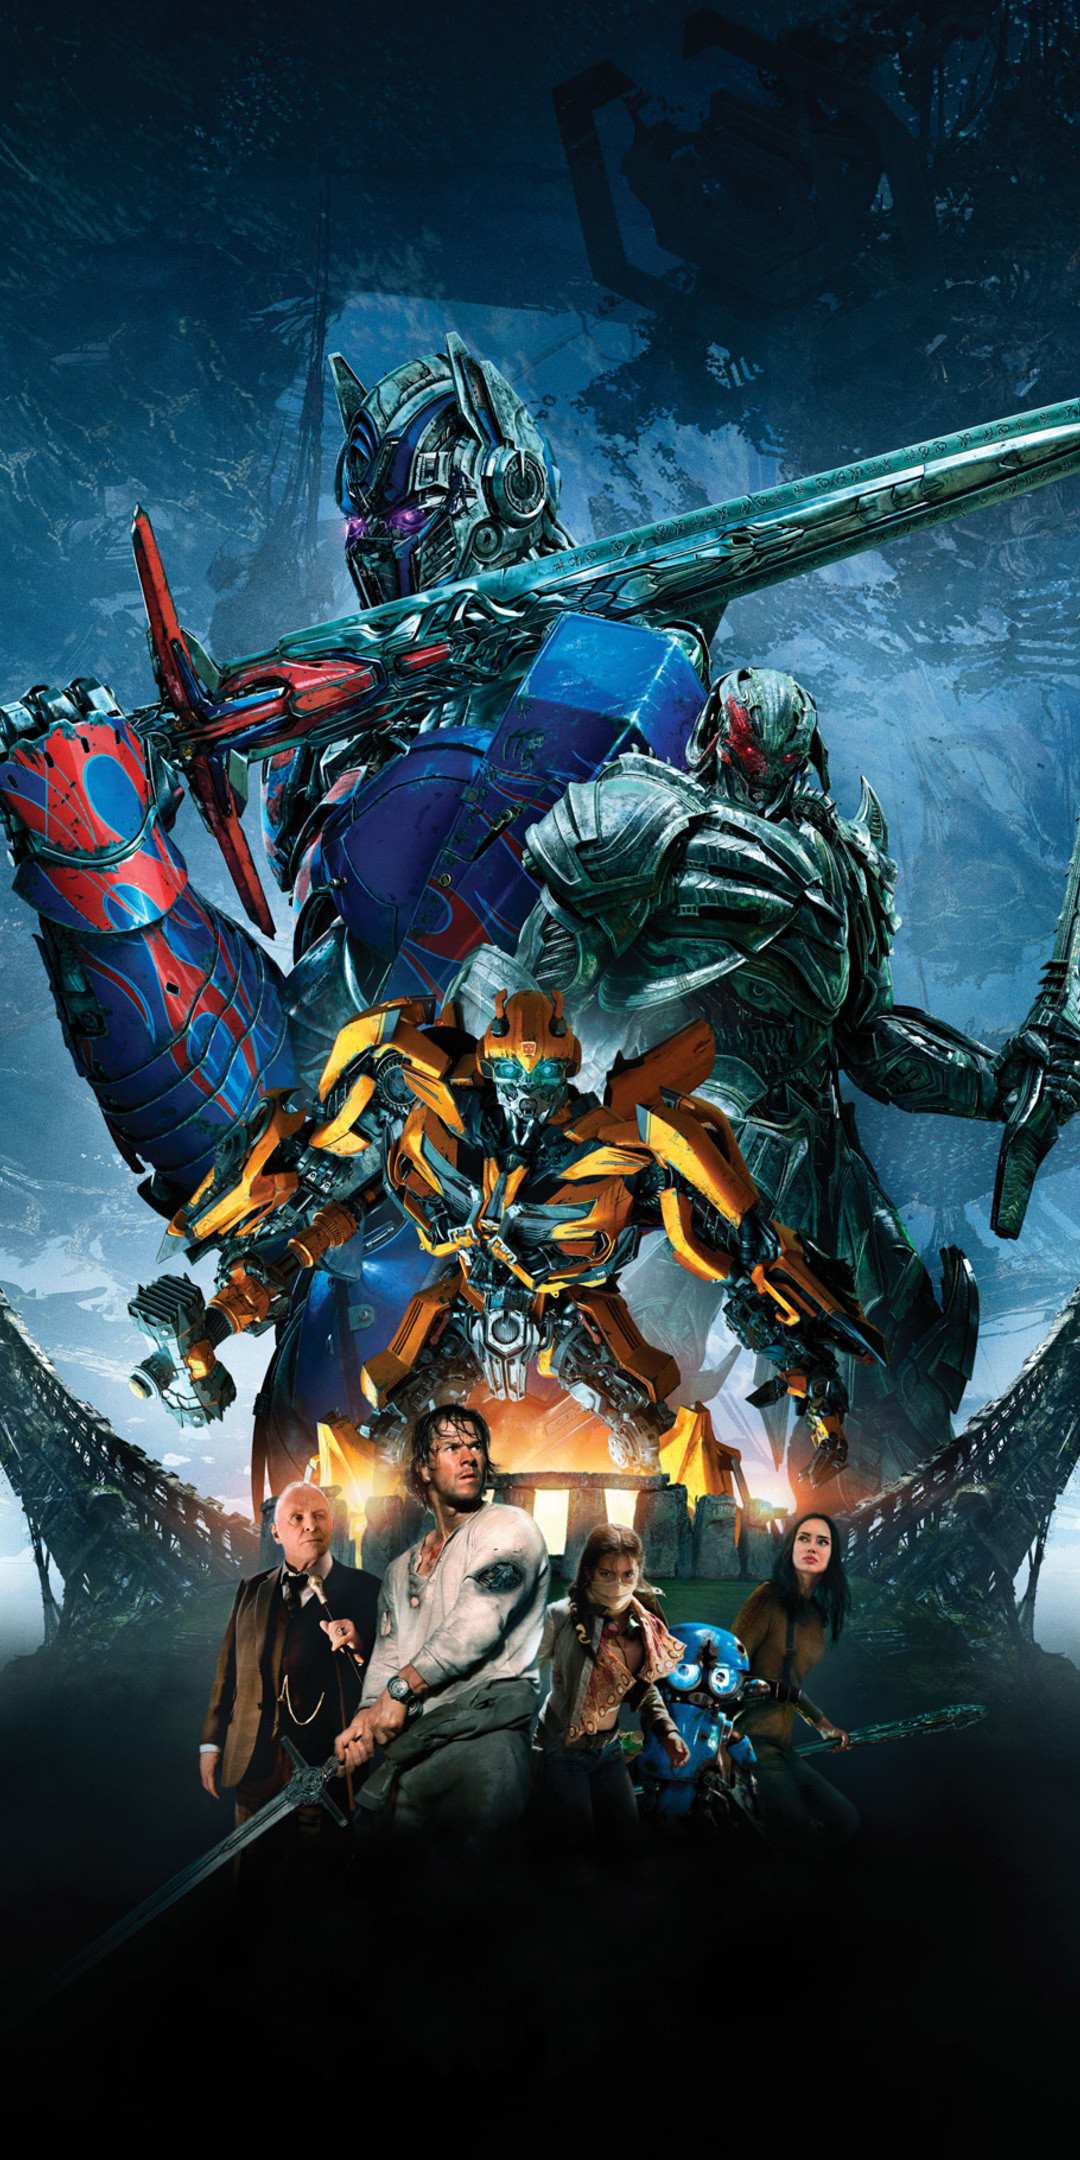 1080x2160 Transformers The Last Knight Bumblebee Megatron Optimus Prime 4k 5k (One  Plus 5T,Honor 7x,Honor view 10,Lg Q6)